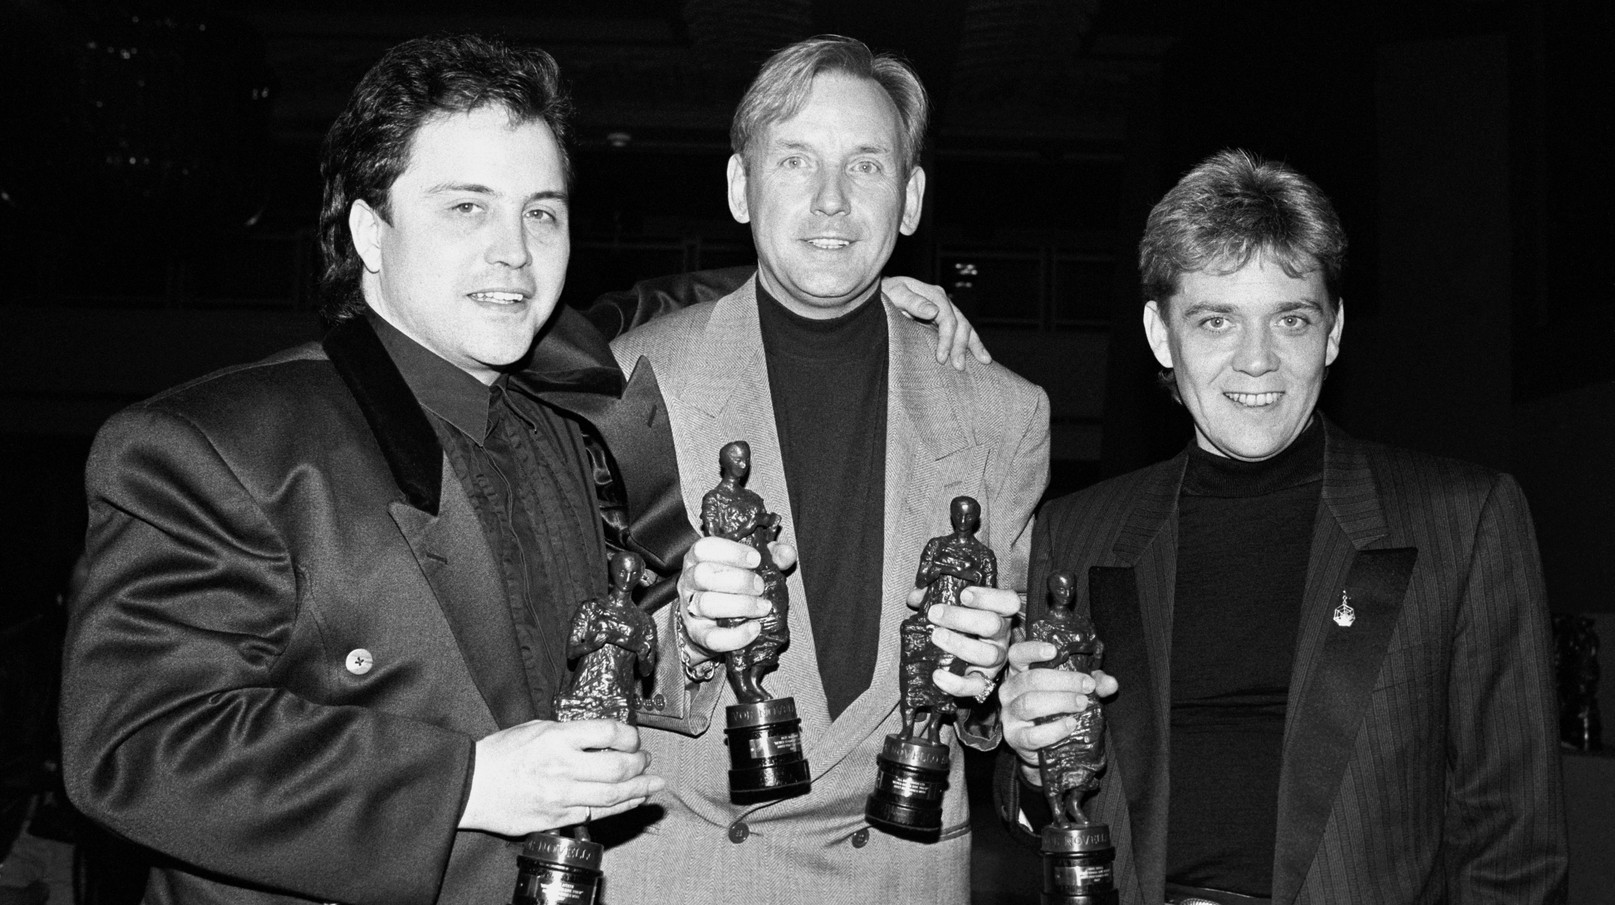 Winning several Ivor Novello Awards